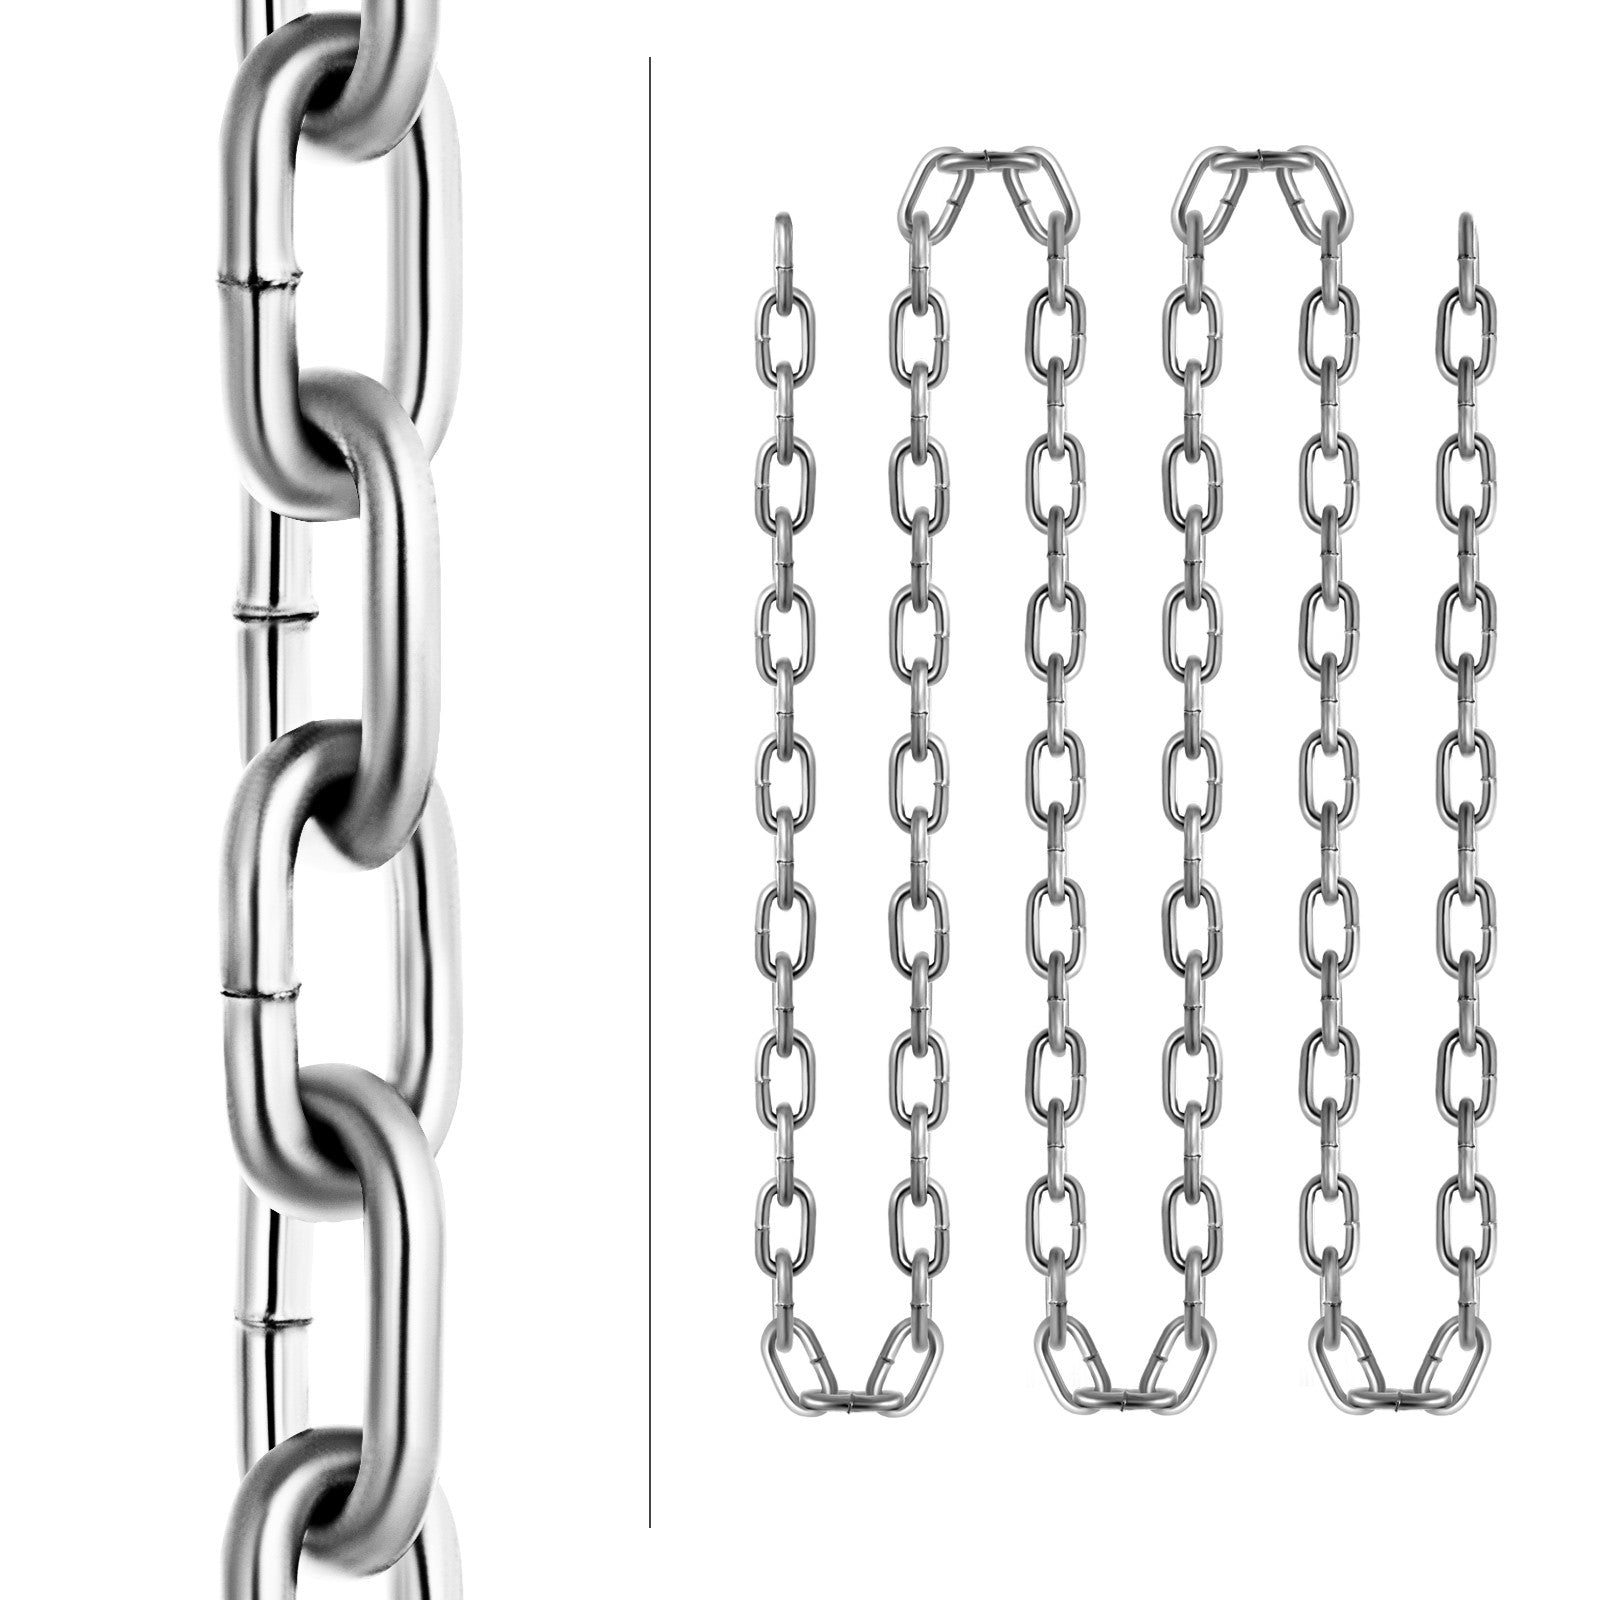 Brand 1/4ft Coil Chain Electrogalvanized 100ft Grade 30